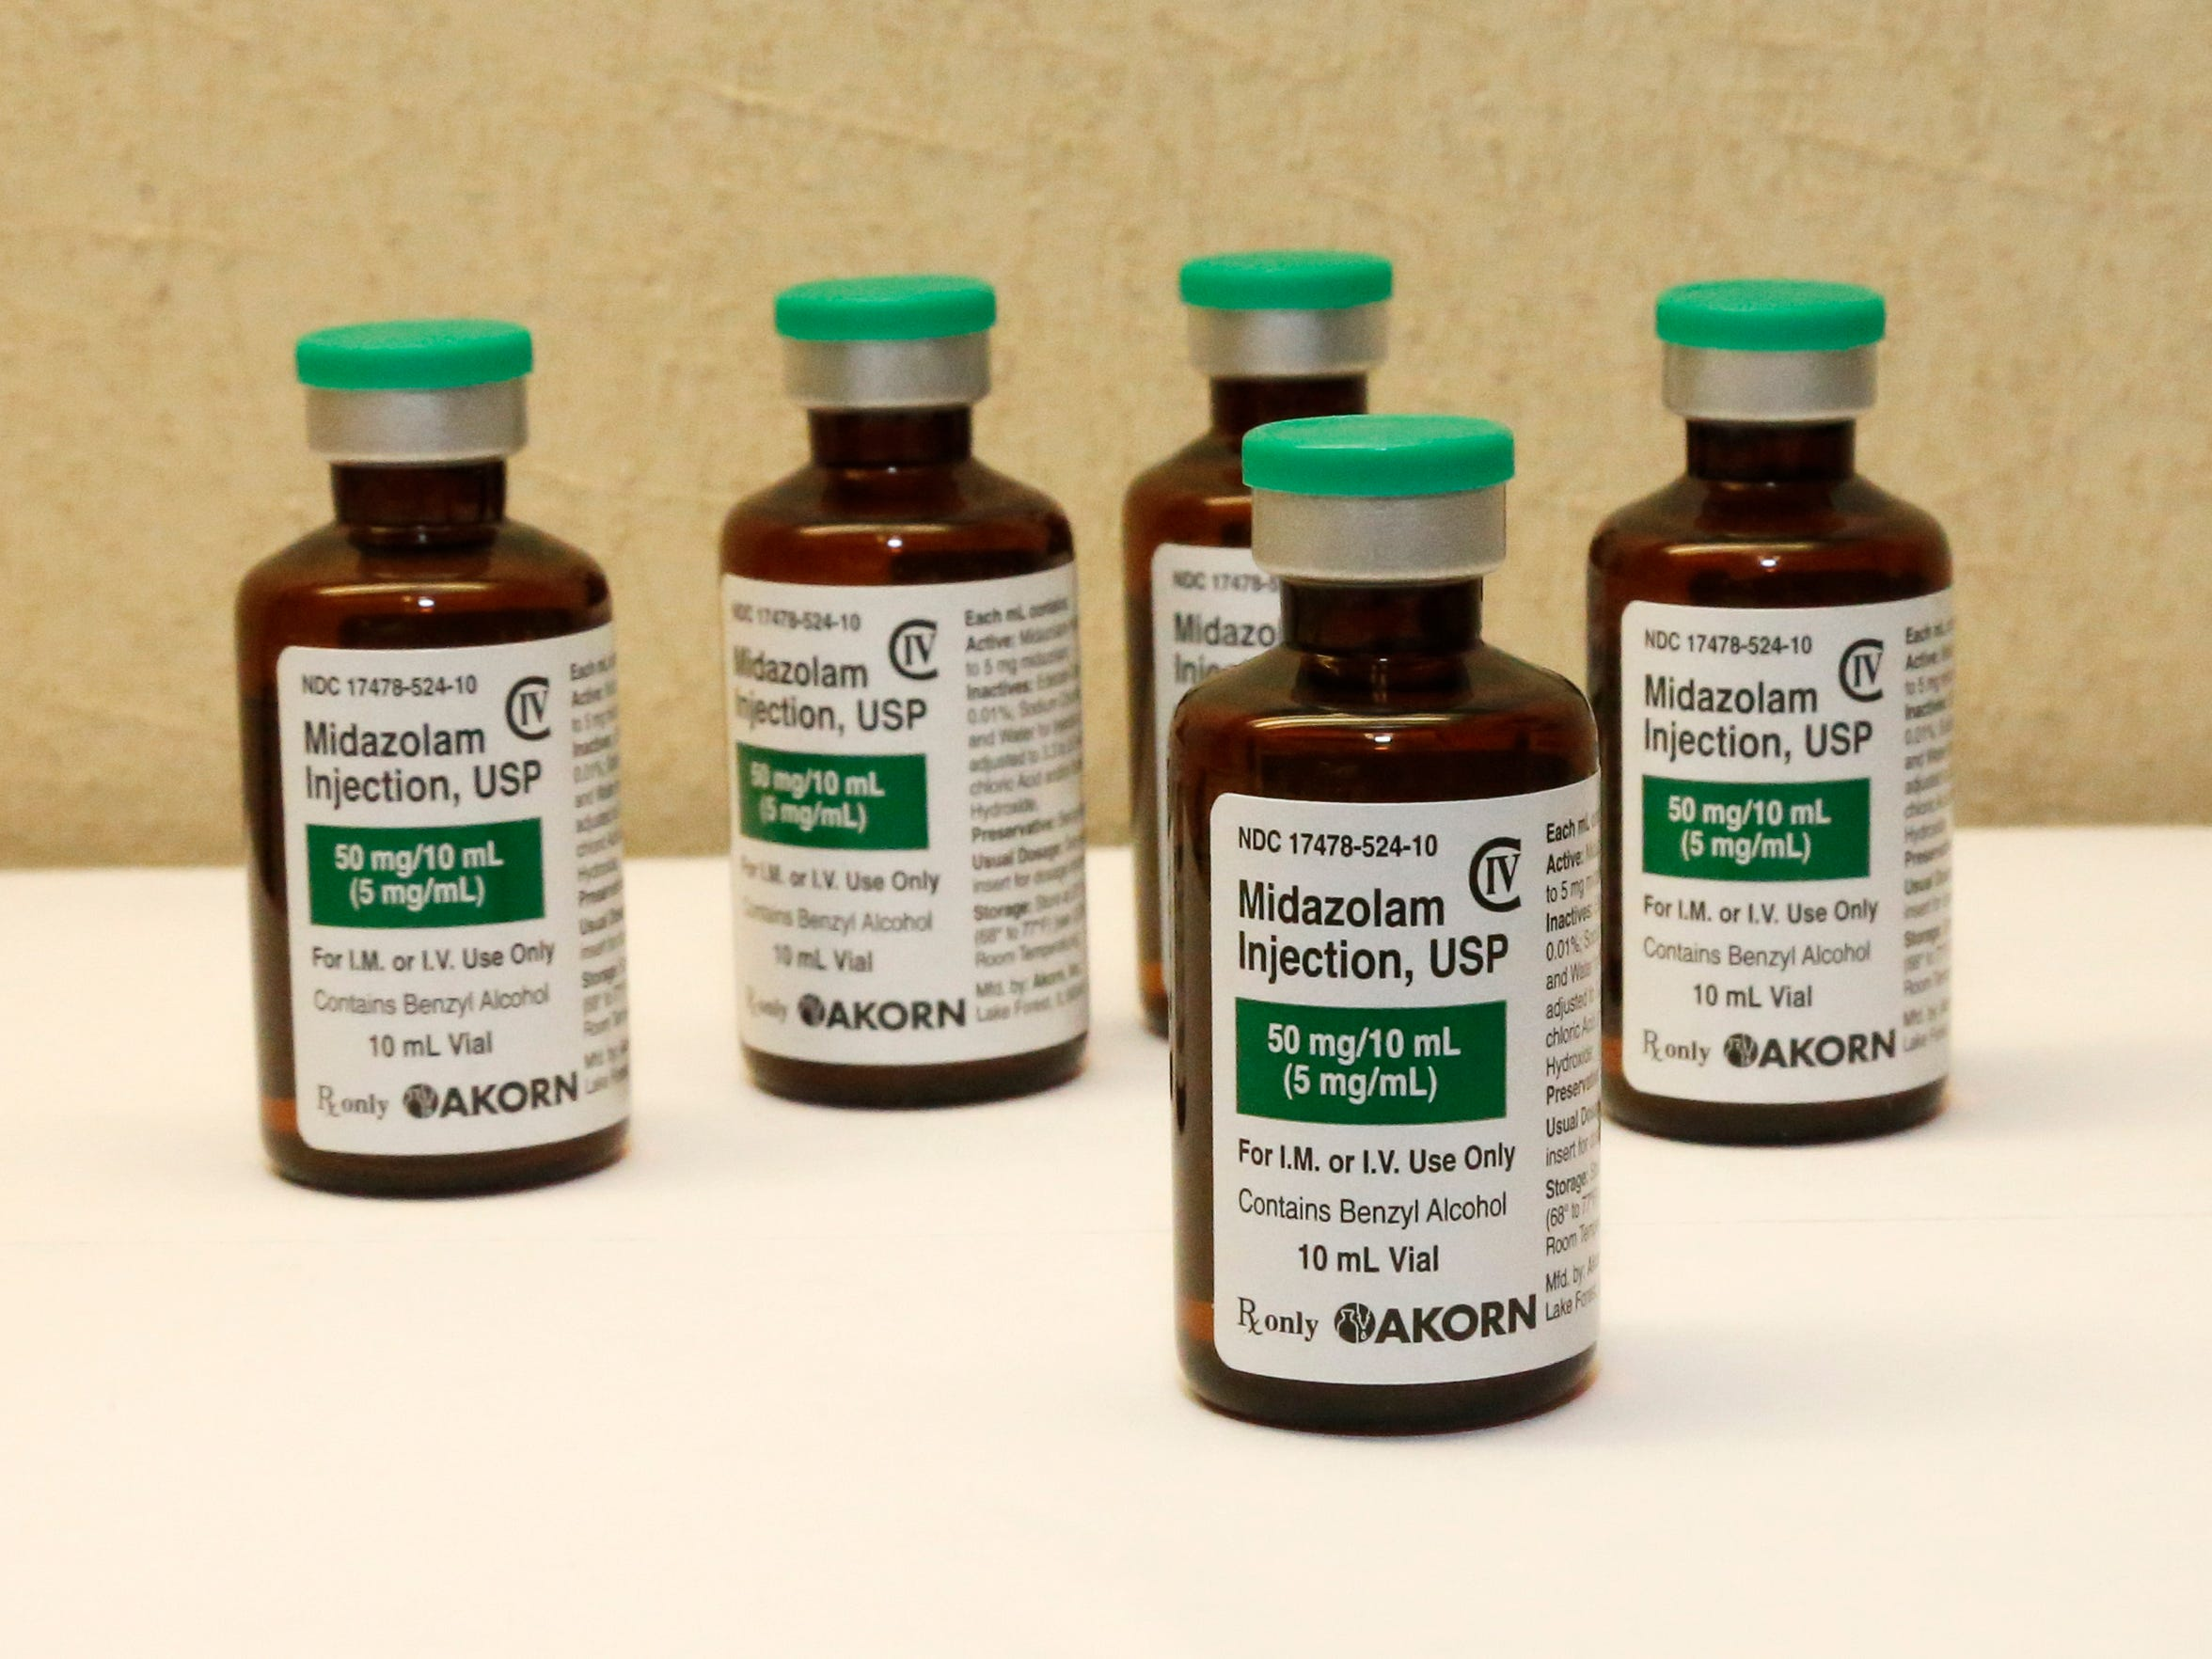 Bottles of the sedative midazolam are displayed at a hospital pharmacy in Oklahoma City.